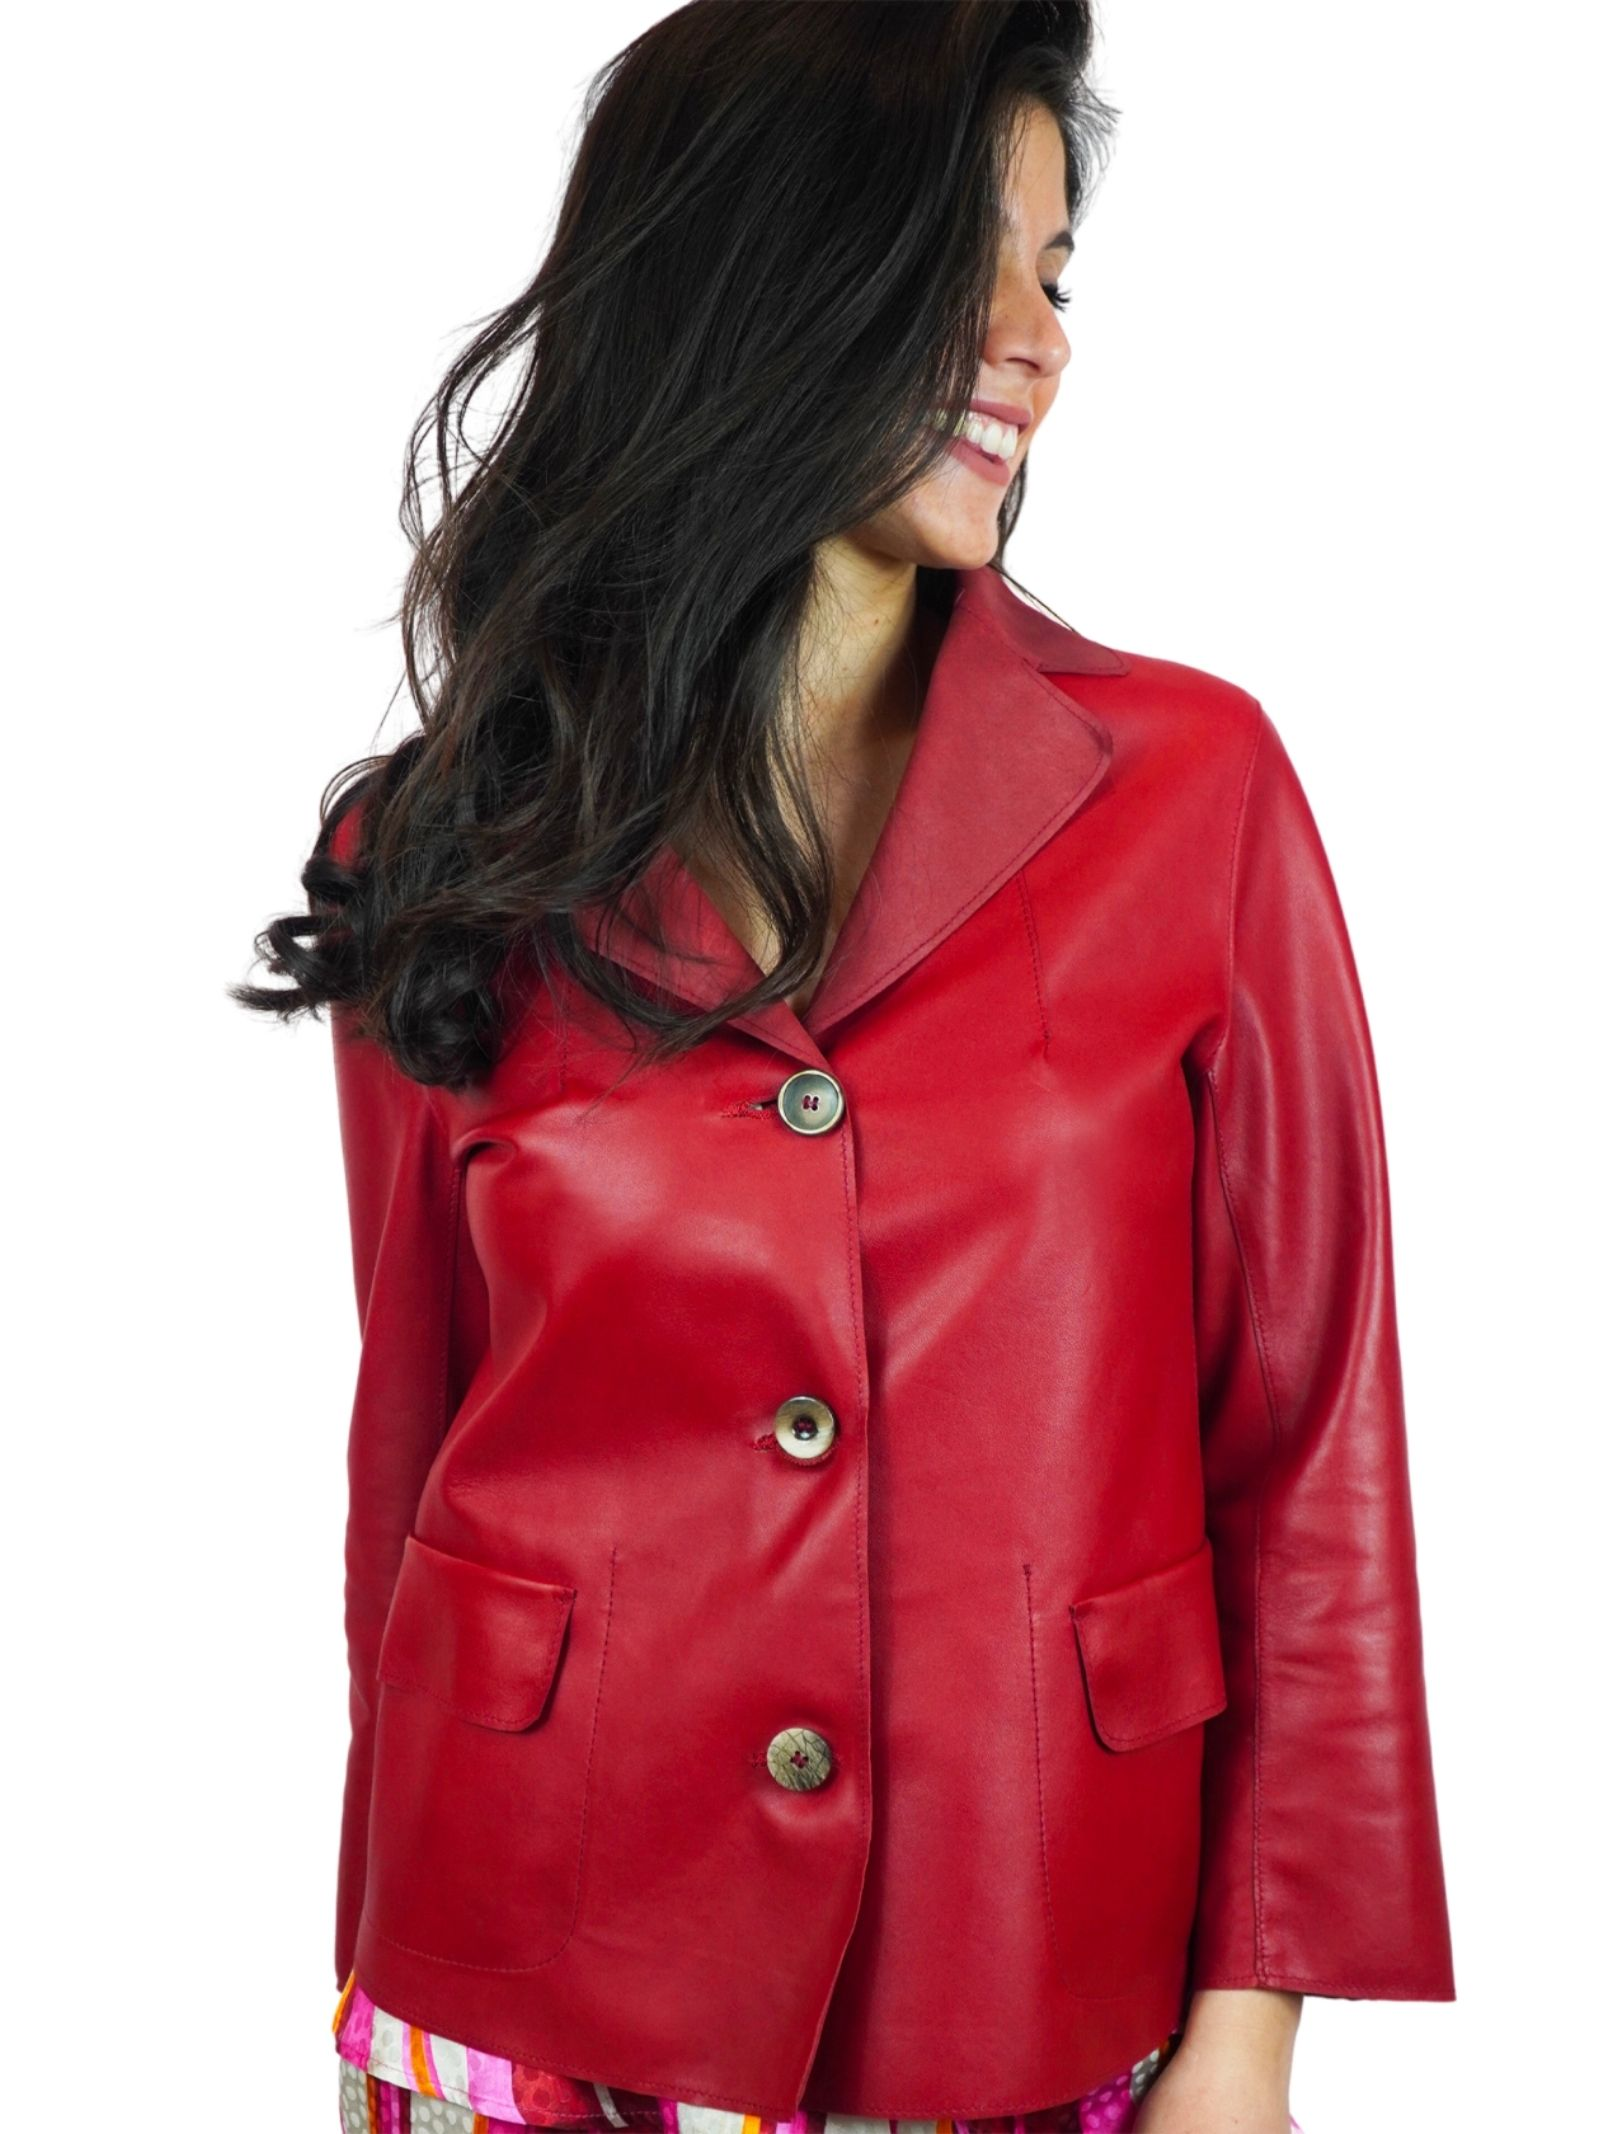 Women's Clothing Unlined Red Leather Jacket with Vintage Buttons Spatarella |  | 1527017